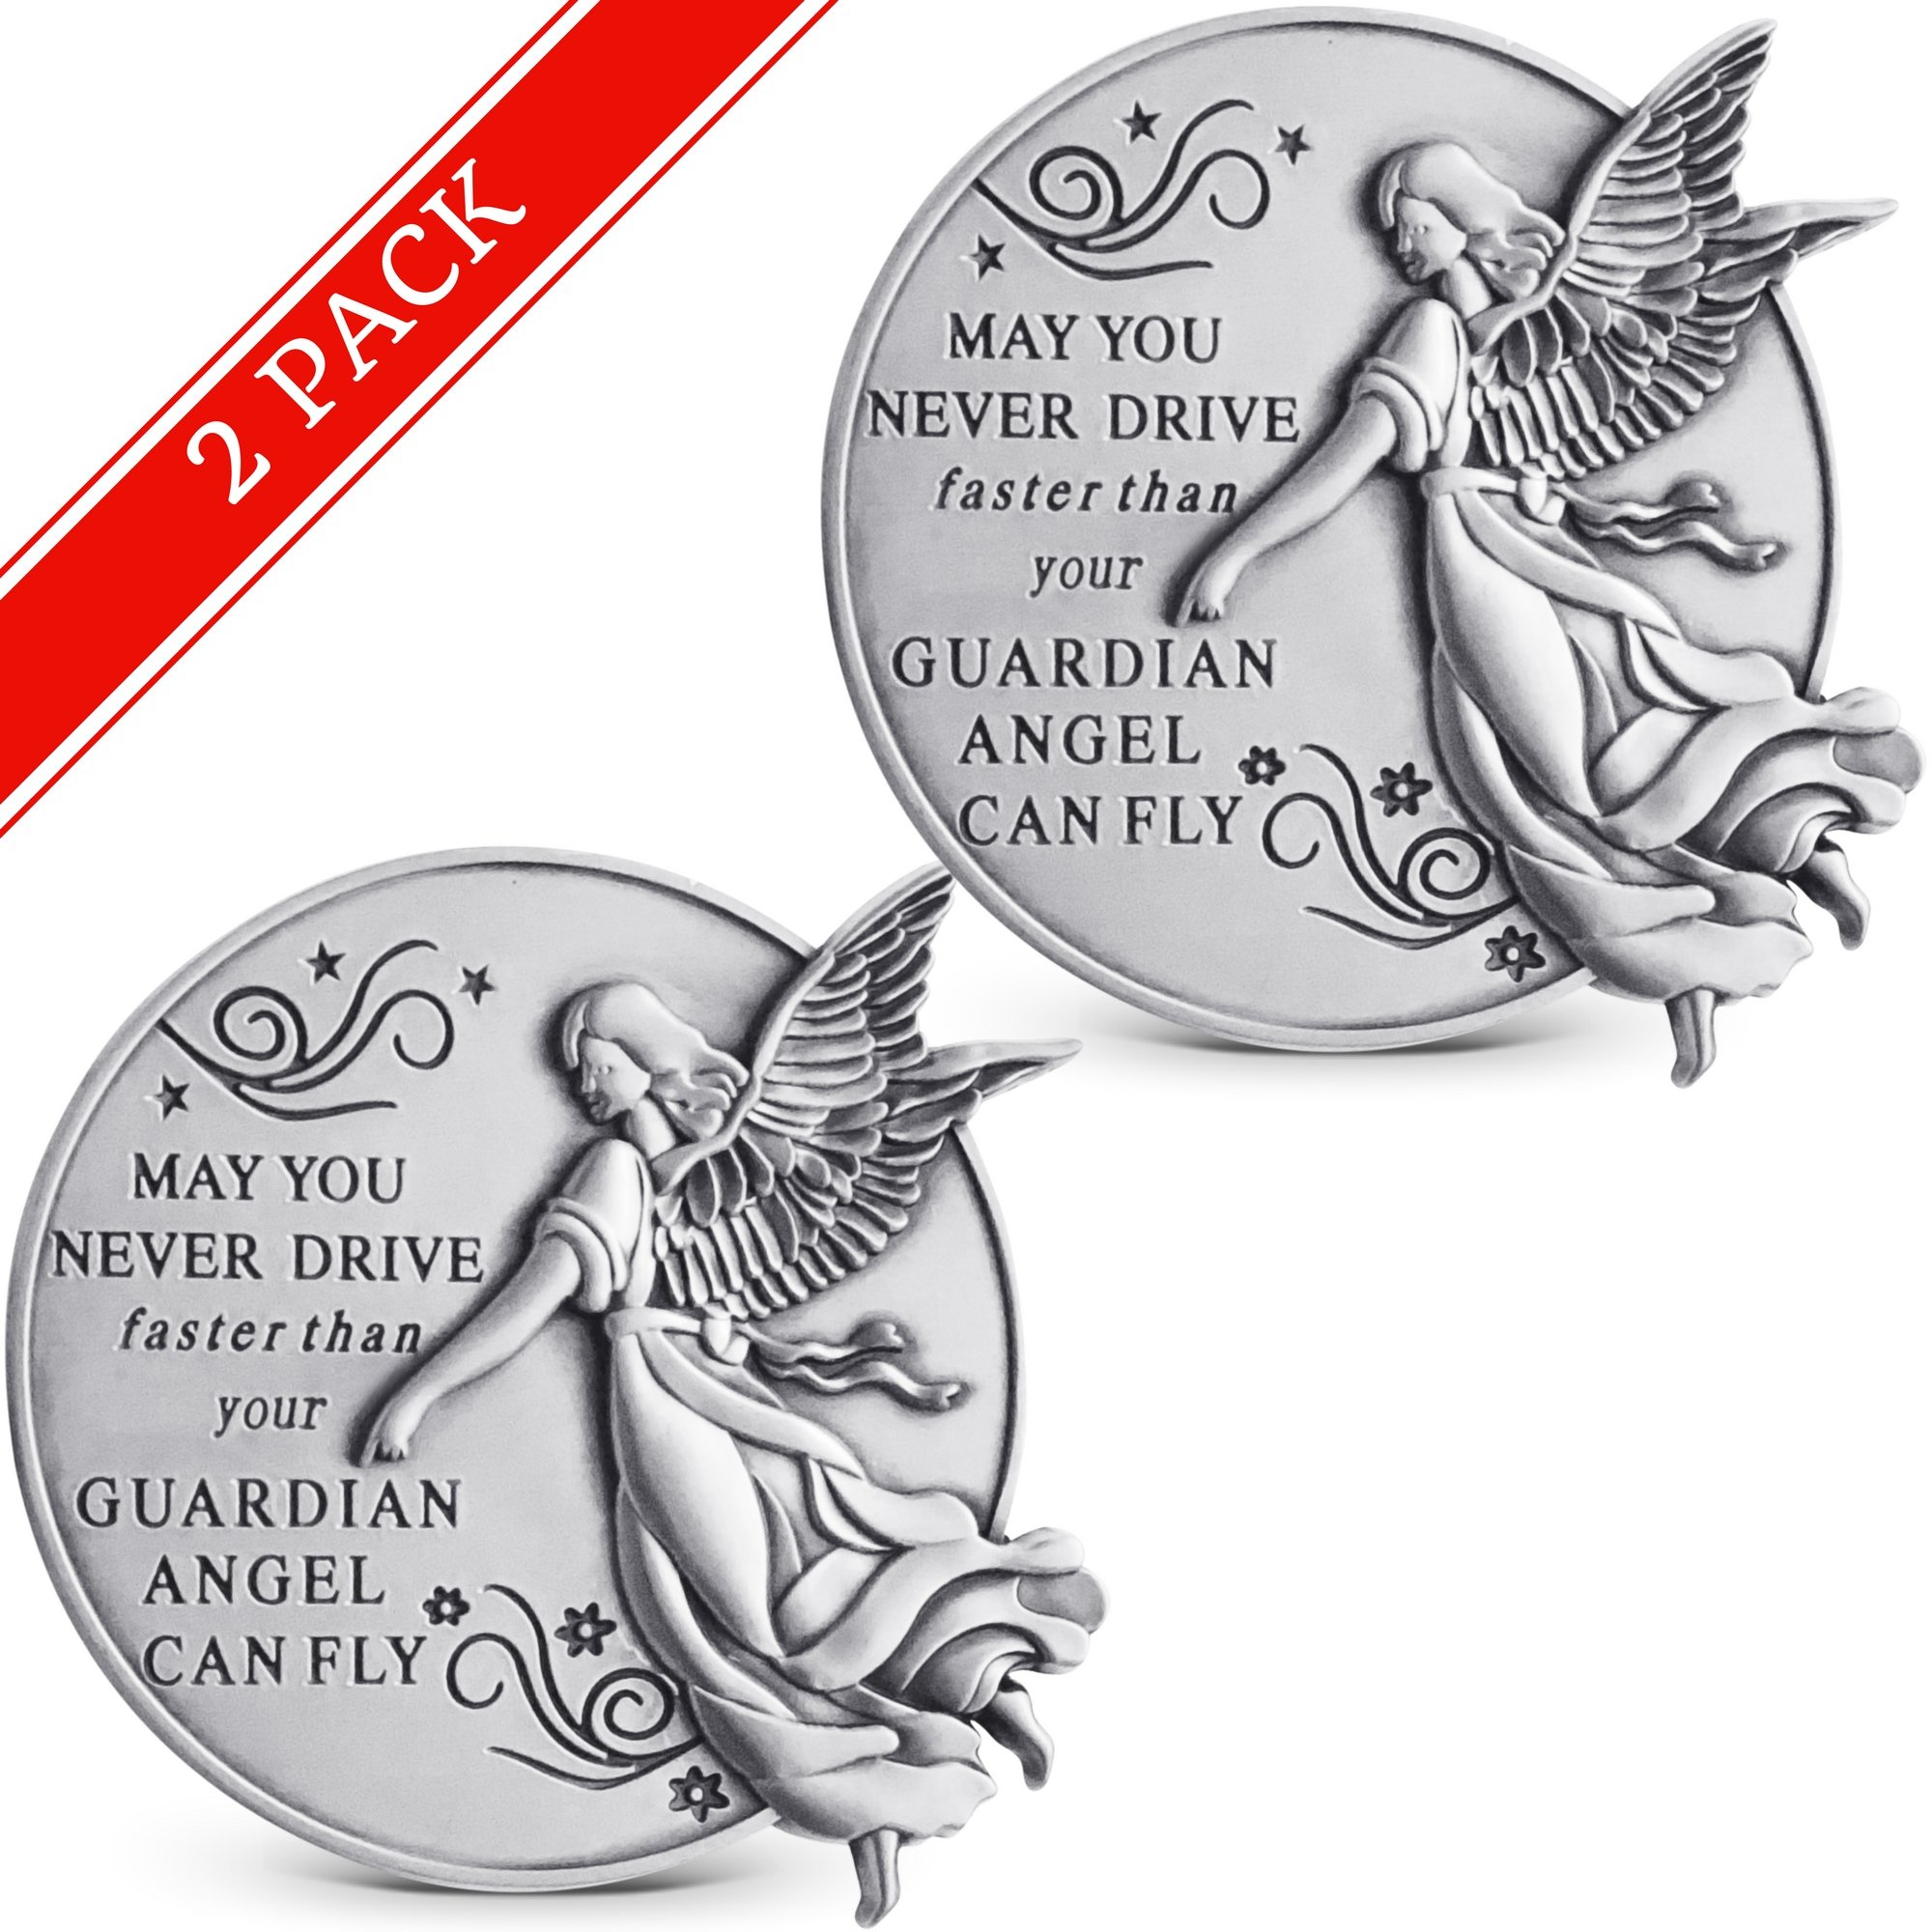 Guardian Angel Visor Clip For Car: (Set of 2) 2-1/4 Inch Diameter Metal, Reads MAY YOU NEVER DRIVE FASTER THAN YOUR GUARDIAN ANGEL CAN FLY, Best Parents Gift Idea for New Driver & Loved Ones Cars (2) by Novelty Station